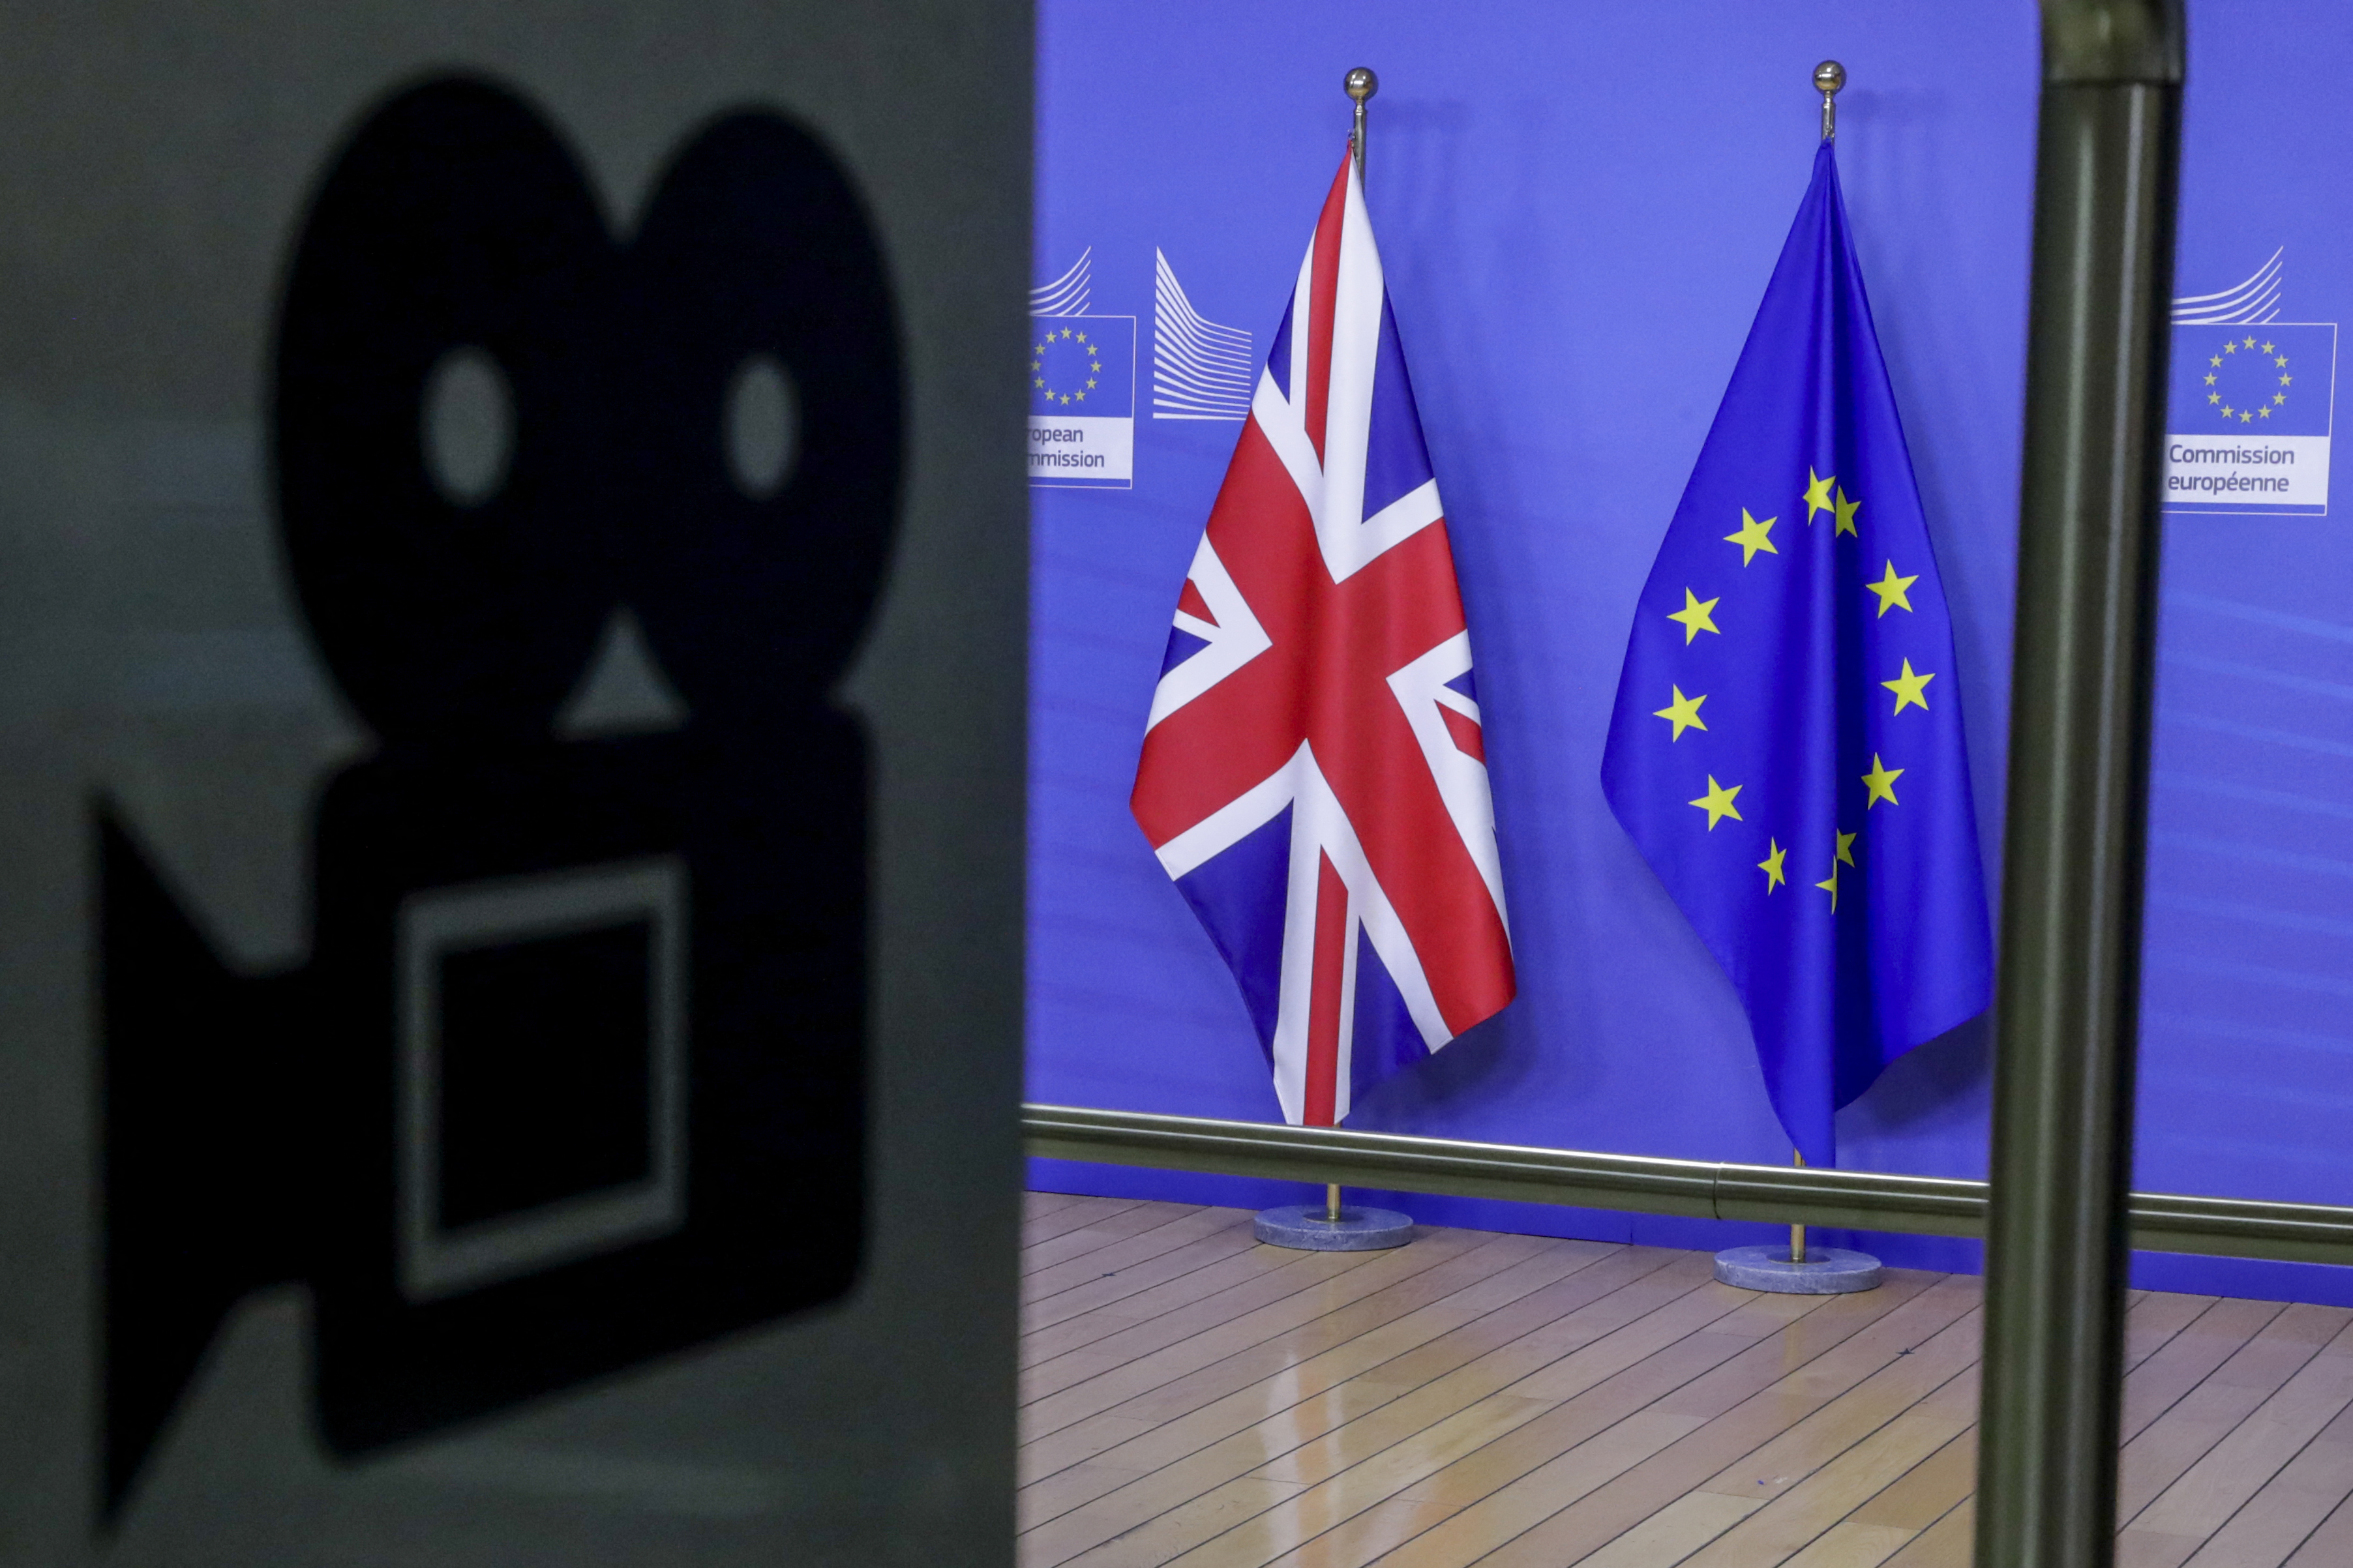 EU seeks to delay application of post-Brexit trade deal